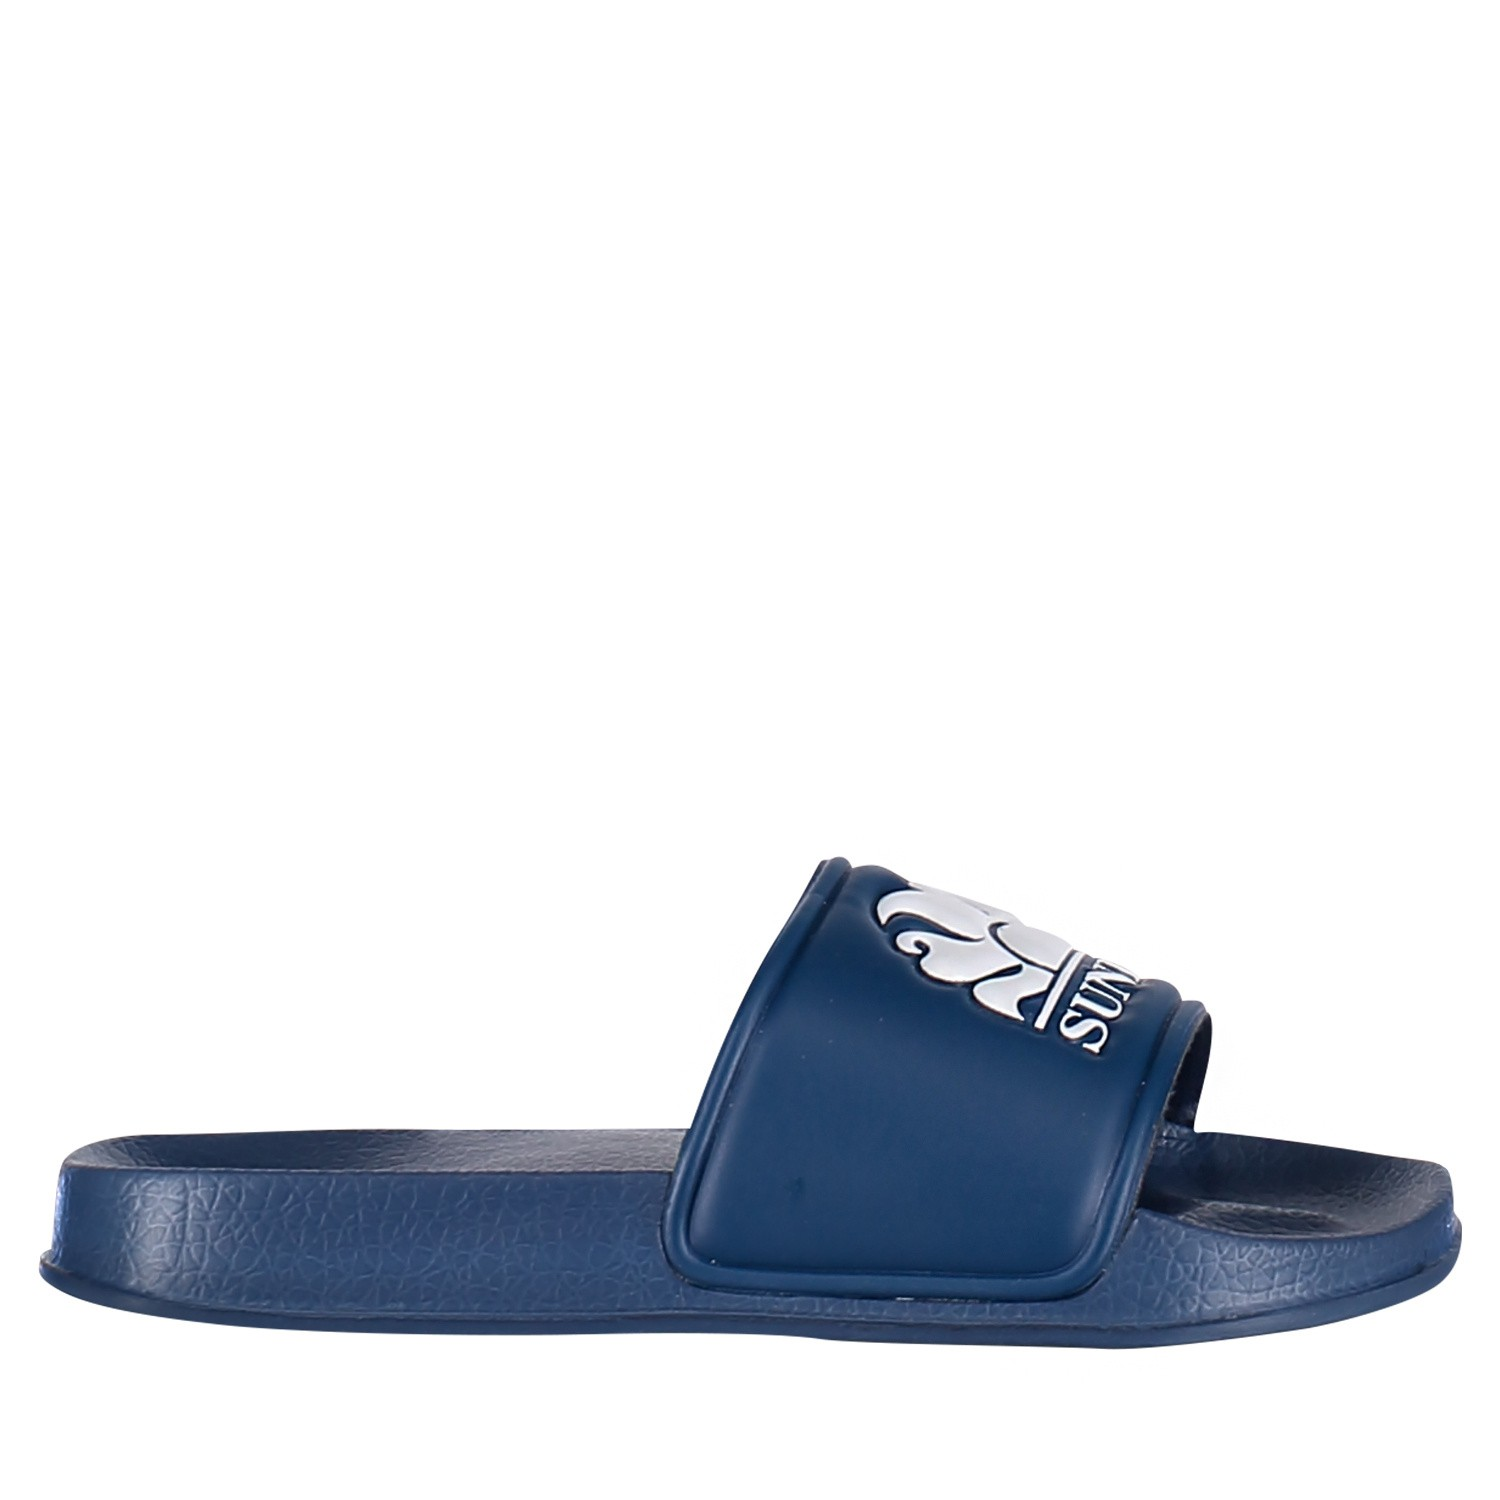 Picture of Sundeck AB338ASPV100 kids flipflops navy